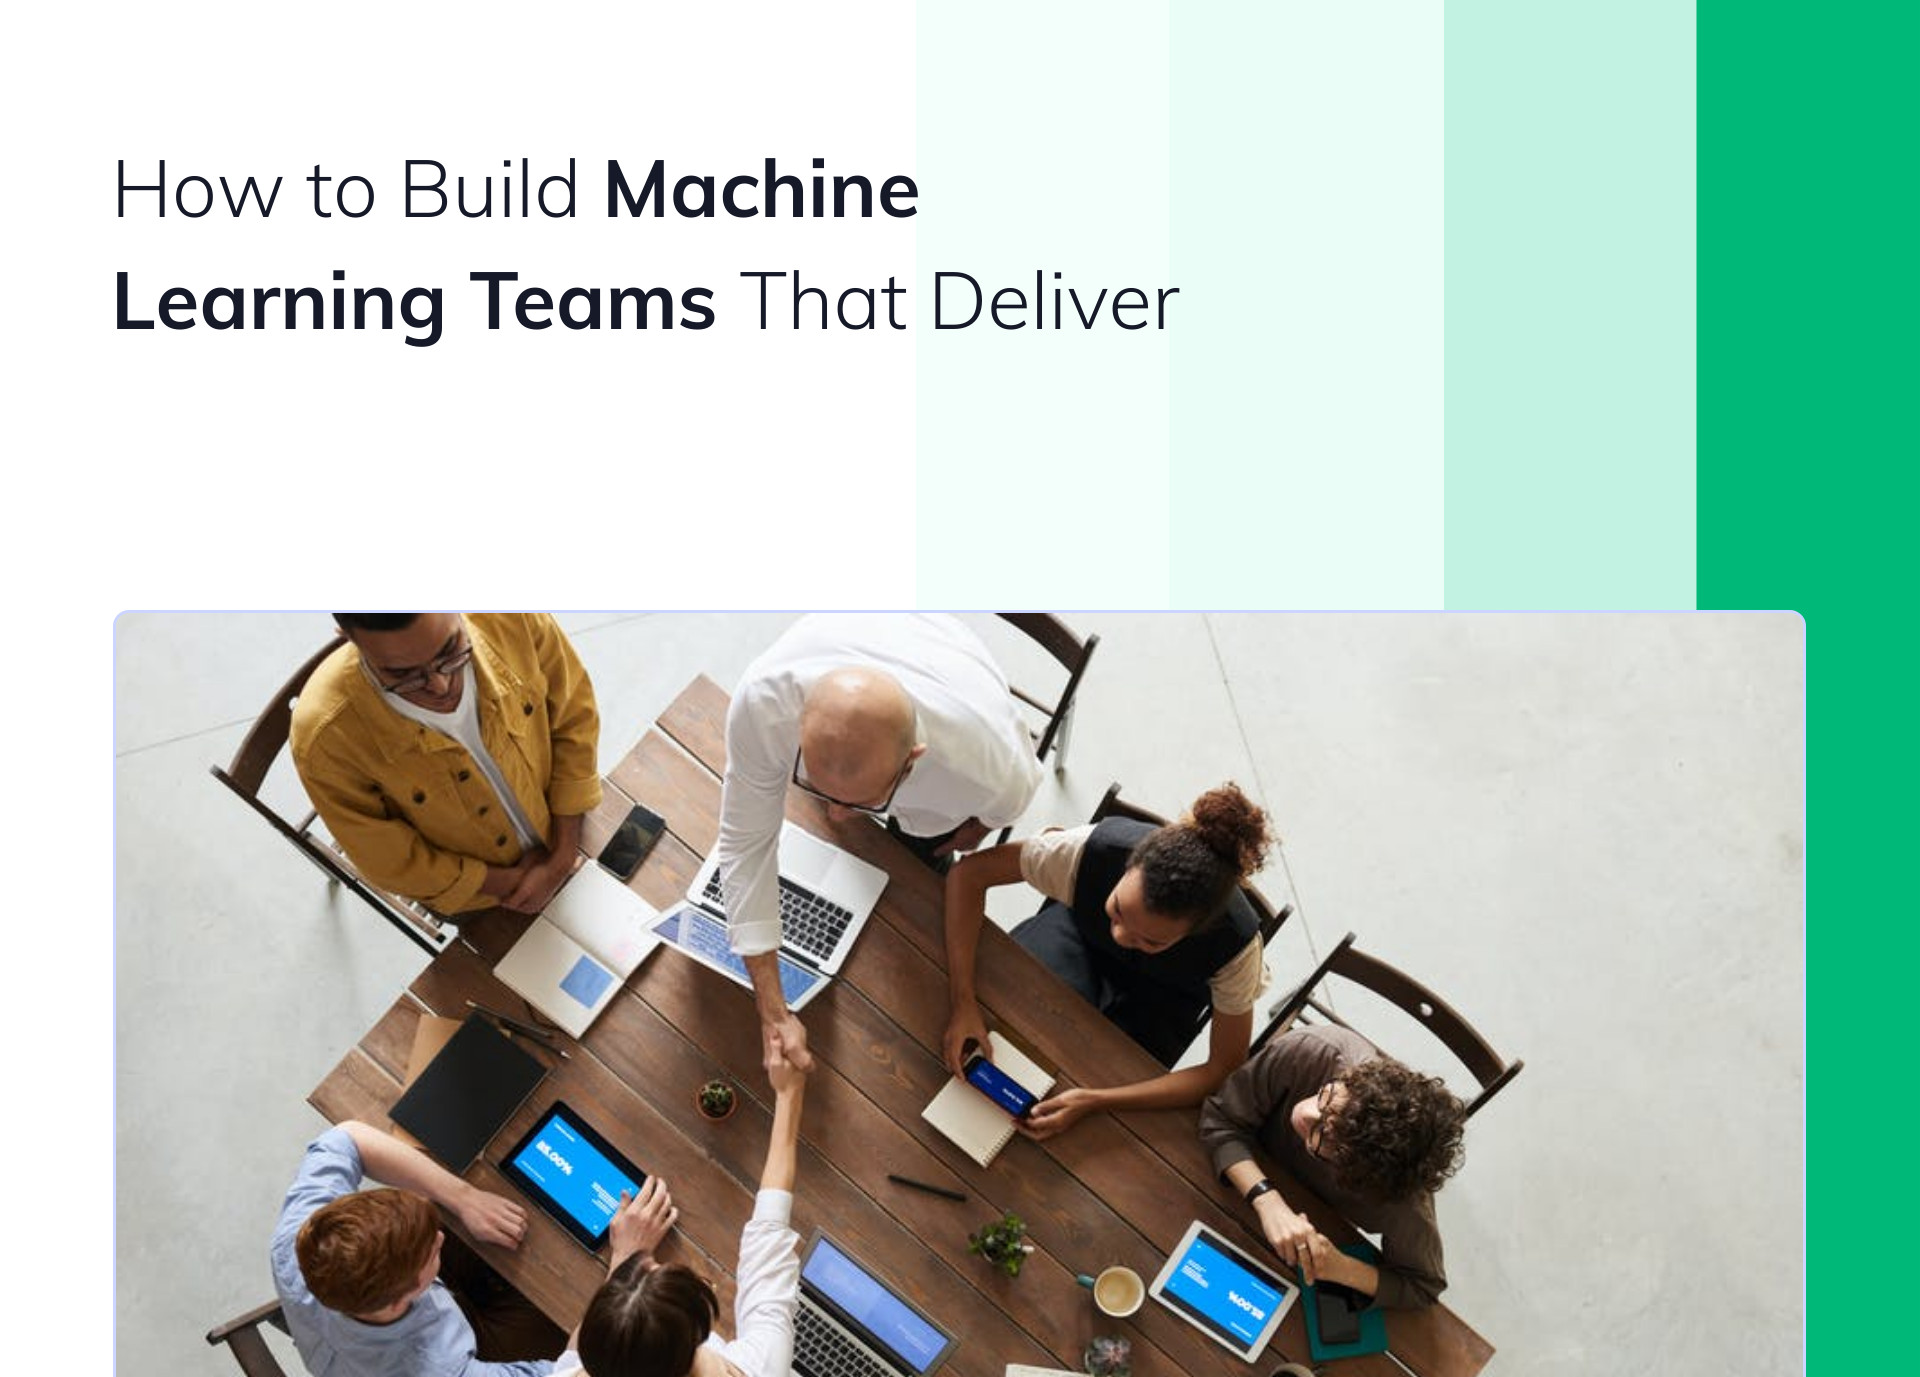 How to Build Machine Learning Teams That Deliver